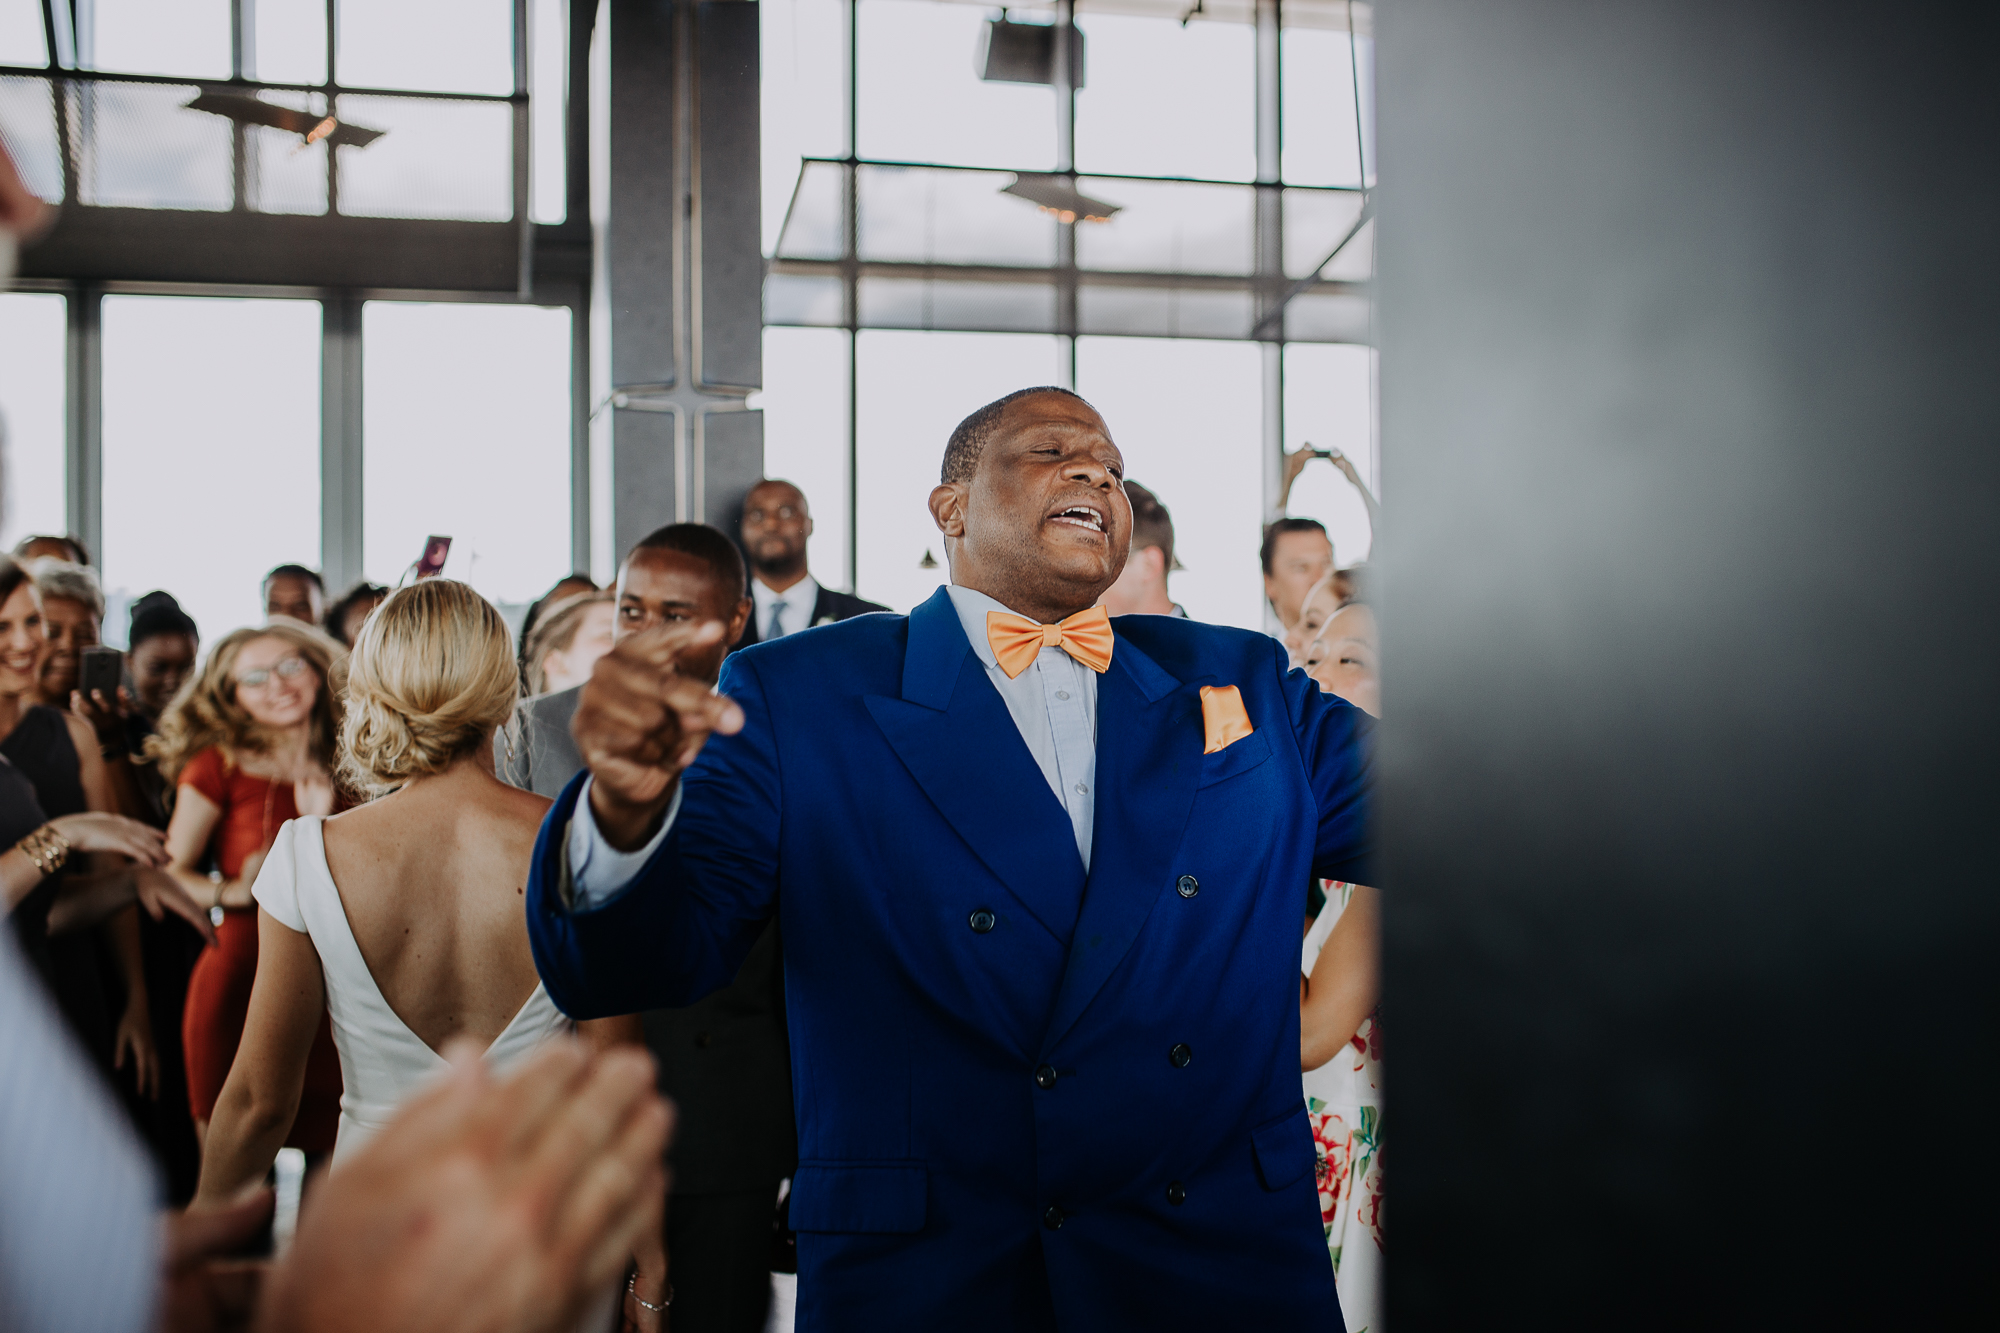 Bethany+Kevin_Married_Blog_0152.jpg